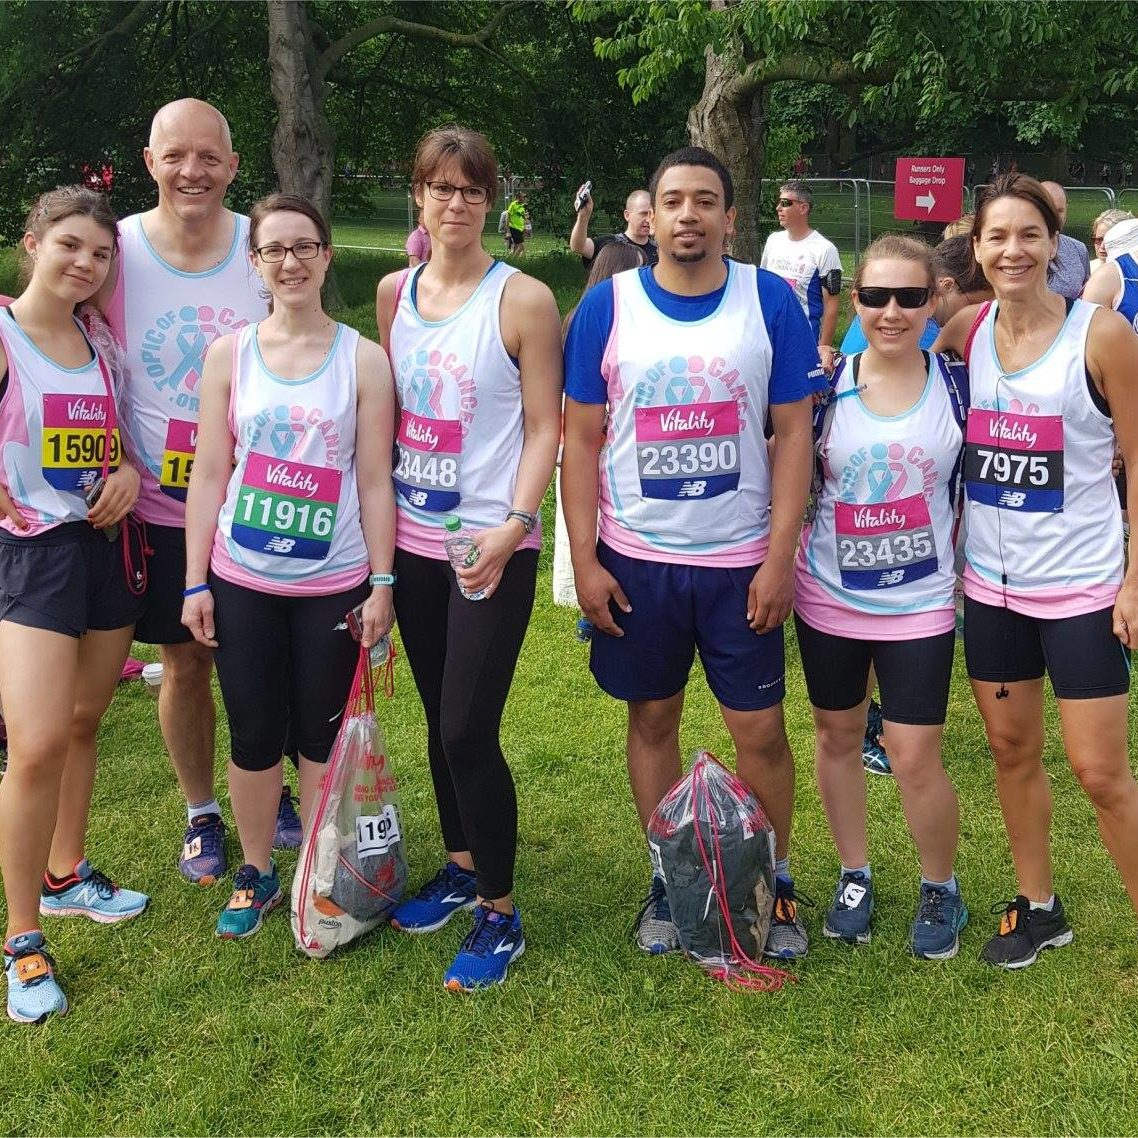 Image of the Topic of Cancer Vitality London 10k team who completed the event to raise funds for objectives.